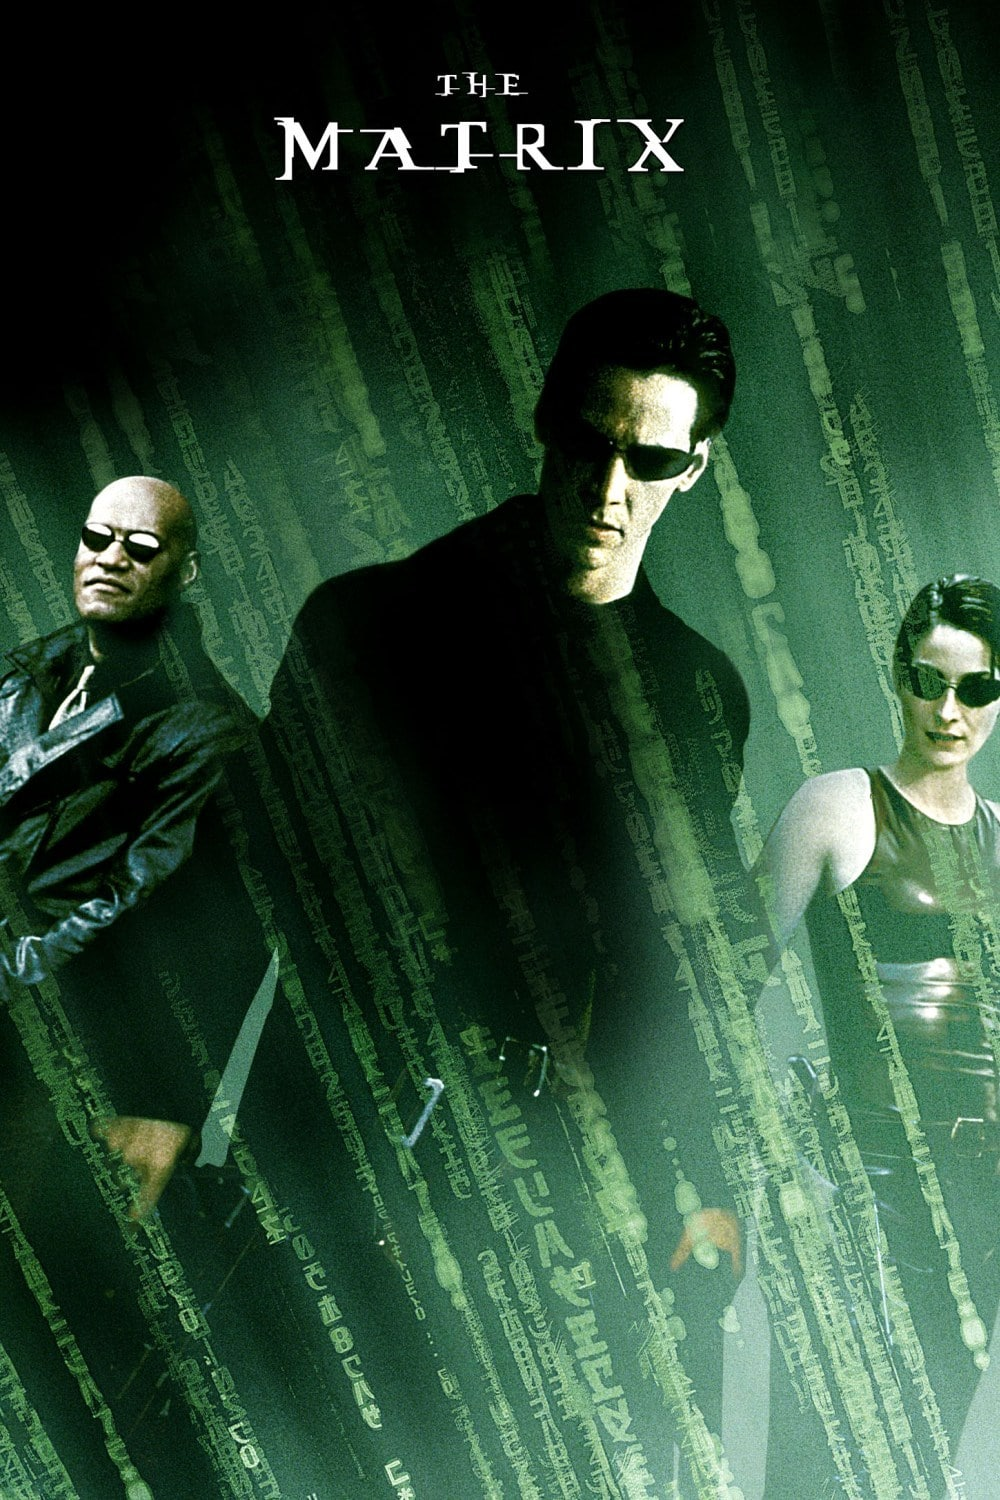 the matrix poster high quality HD printable wallpapers 1999 neo and his team official poster